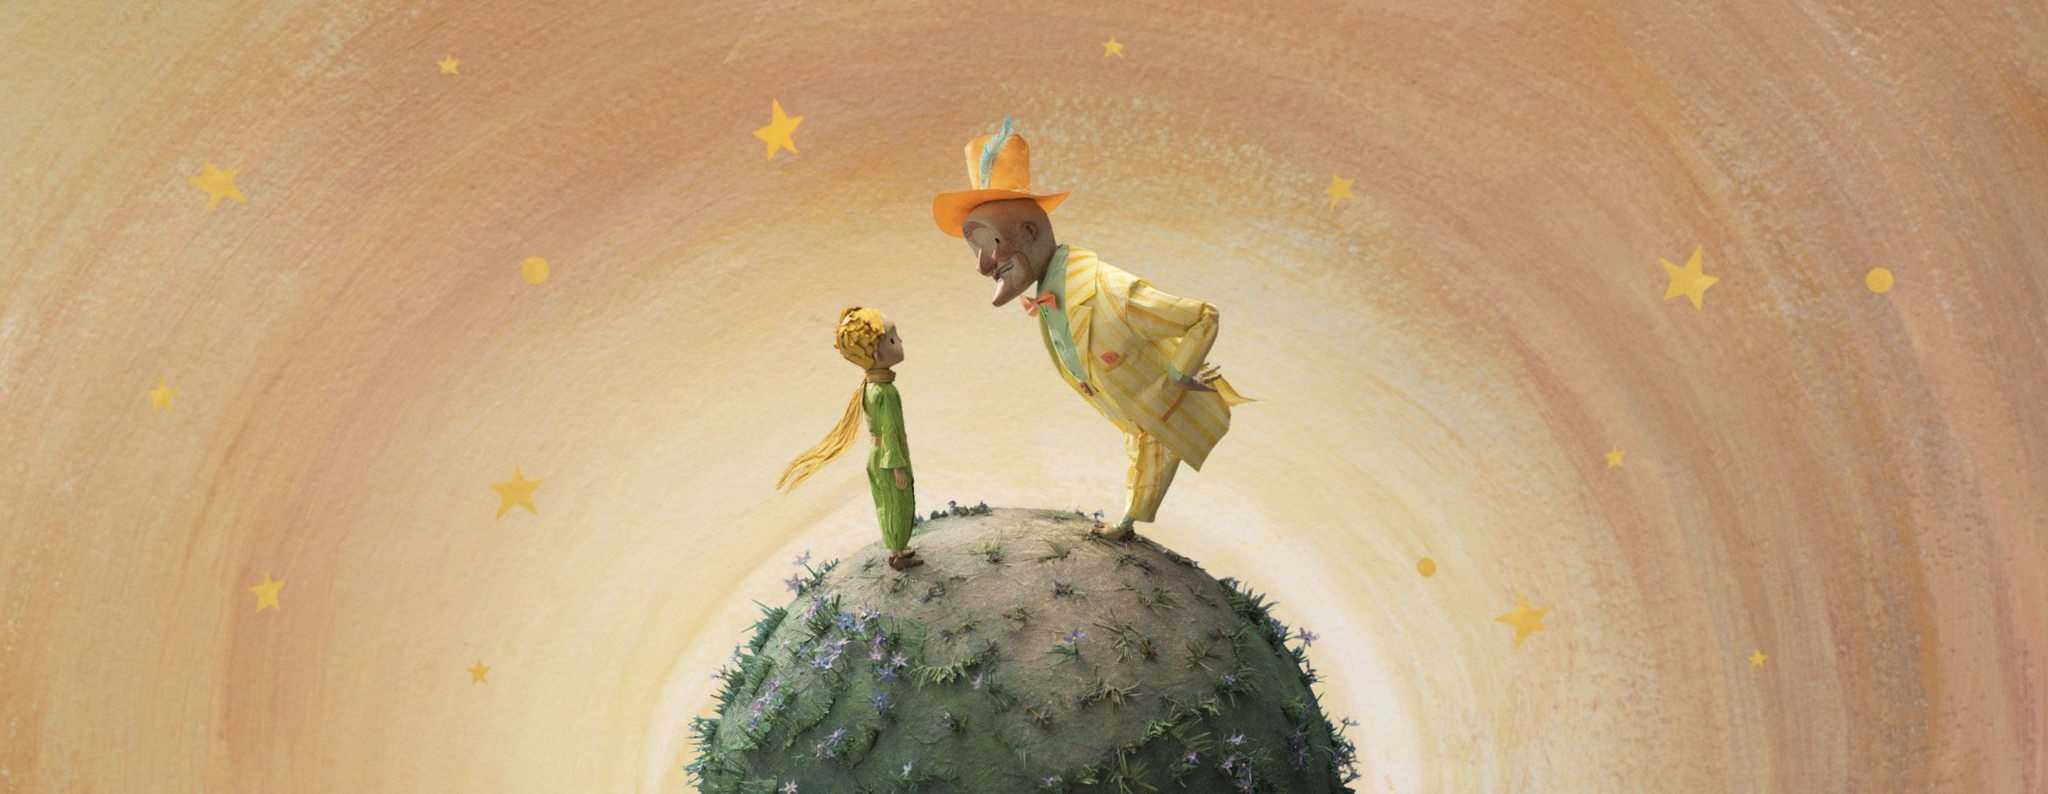 ONYX FILMS</p><p>The Little Prince's blend of animation styles is startlingly beautiful.</p>